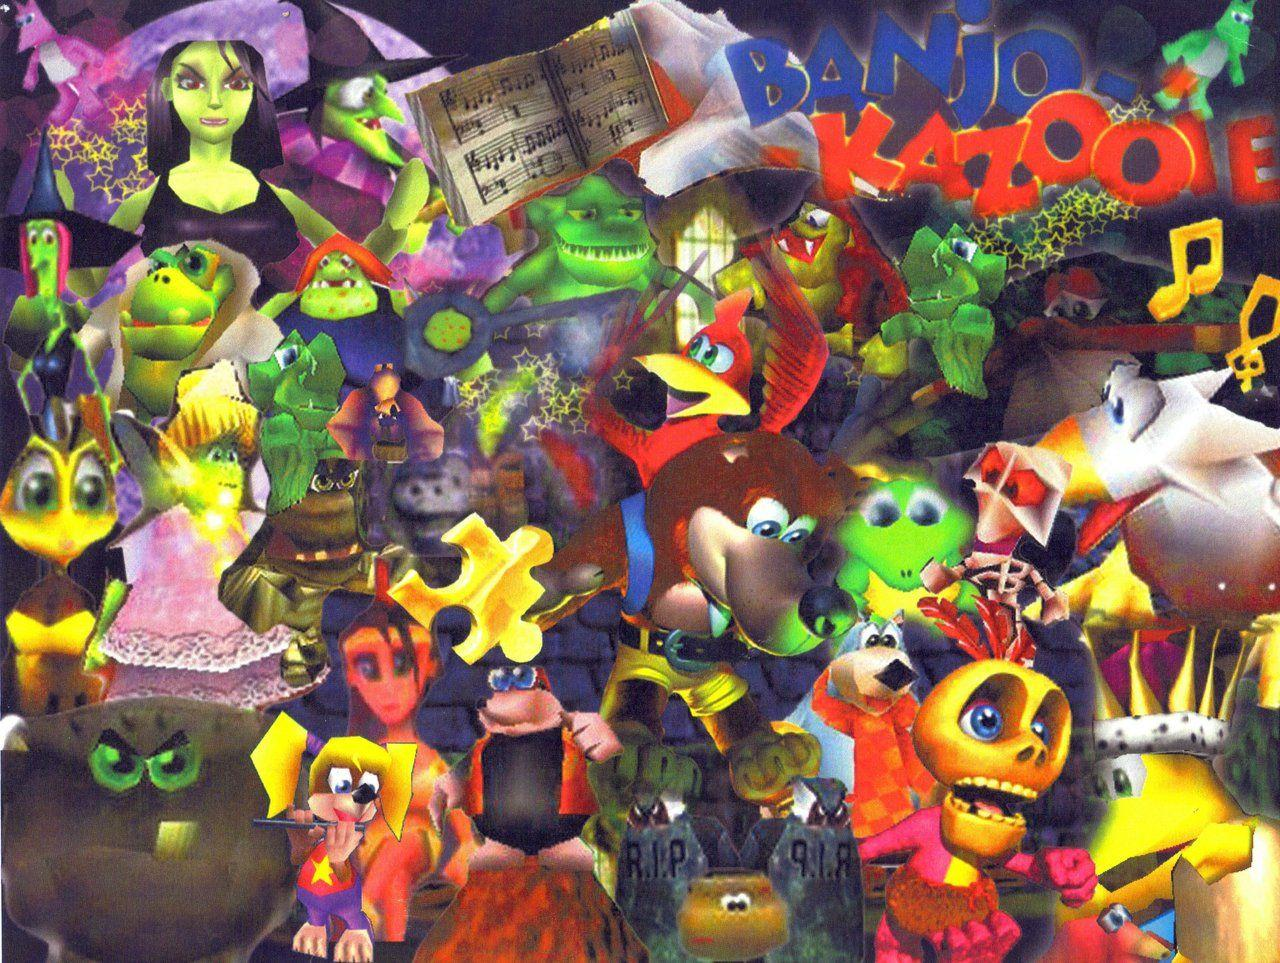 Banjo Kazooie Tooie Wallpapers HD + Nuts And Bolts + Nintendo 64